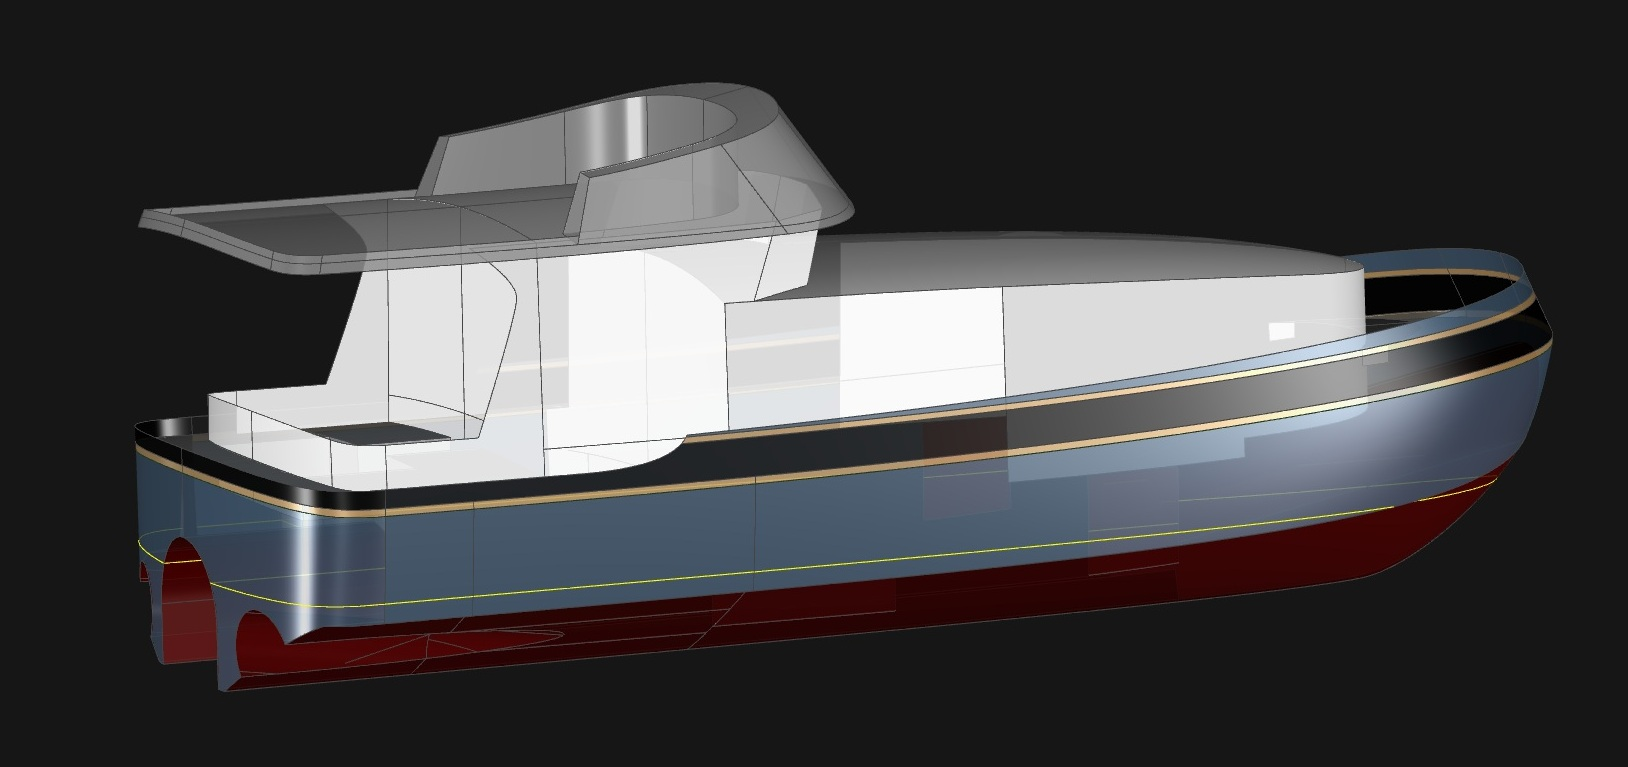 50' Fast Tunnel Cat - Kasten Marine Design, Inc.